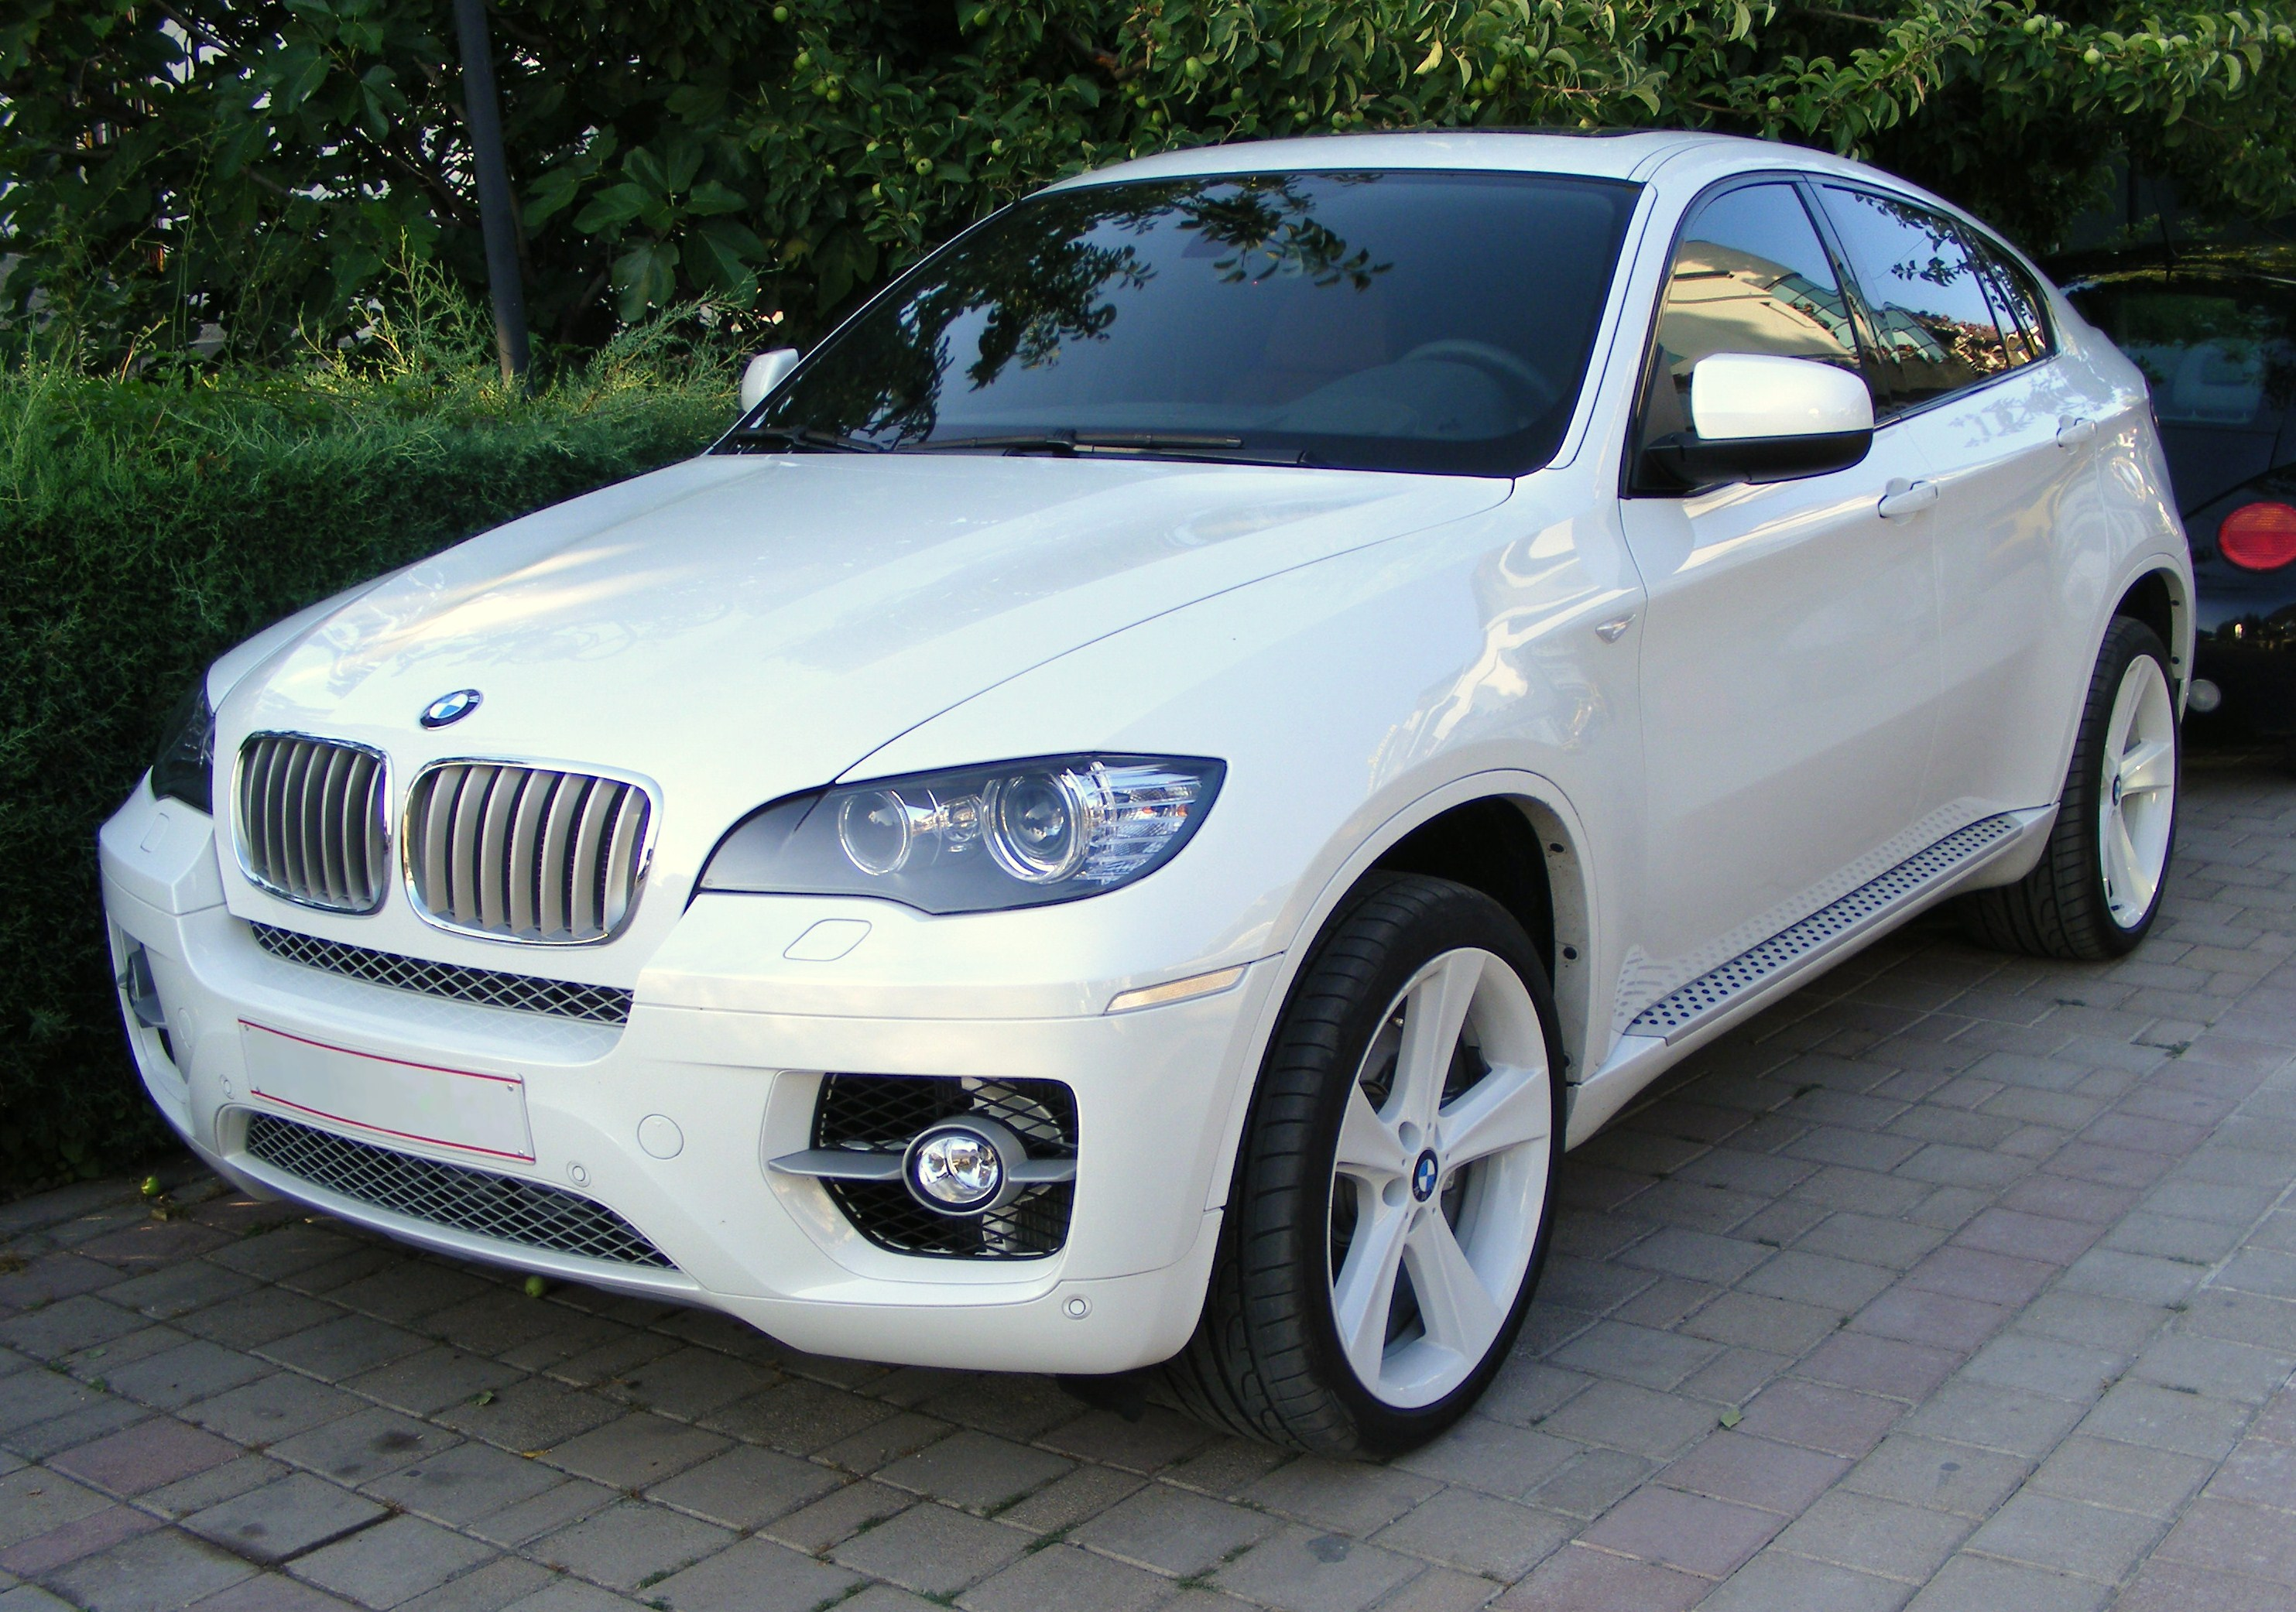 File:BMW X6 front.jpg - Wikimedia Commons